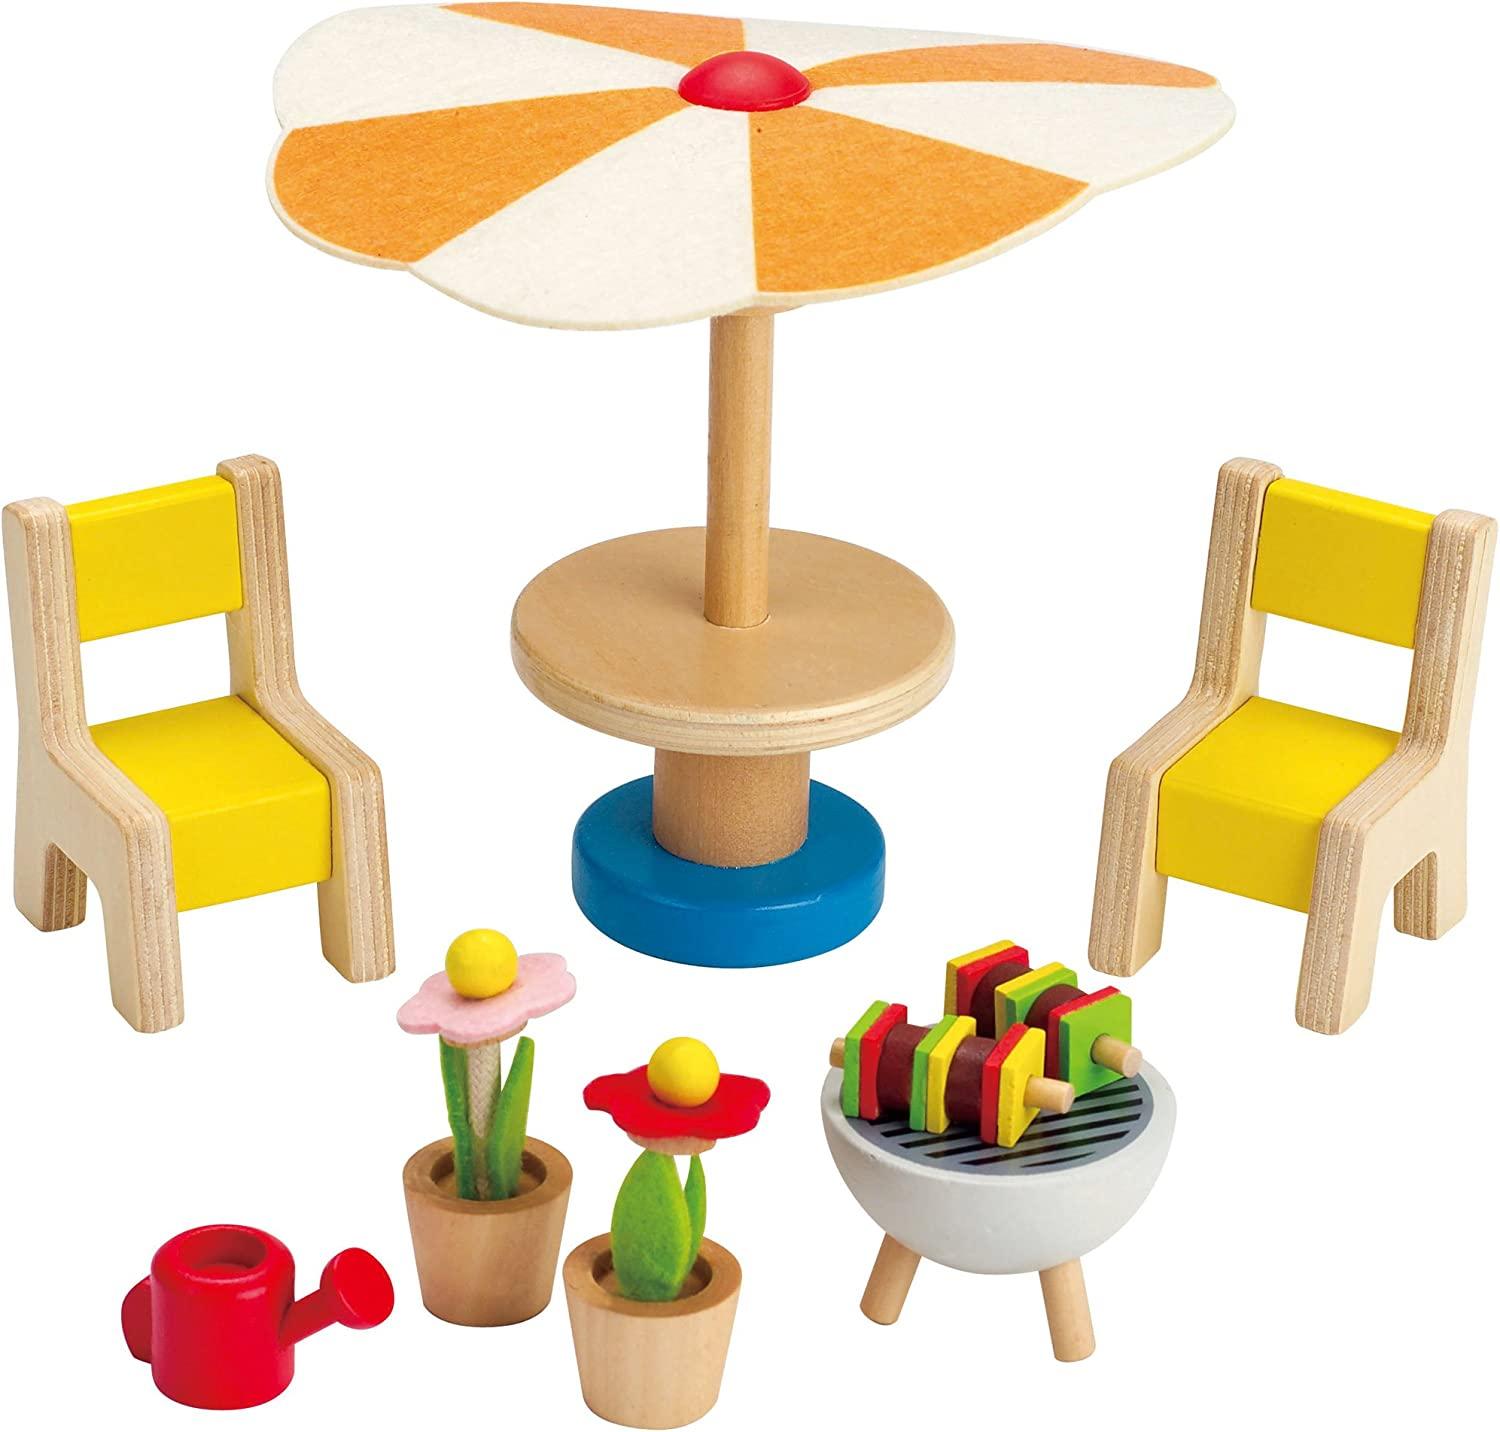 Amazon Com Hape Wooden Doll House Furniture Patio Set With Accessories Toys Games